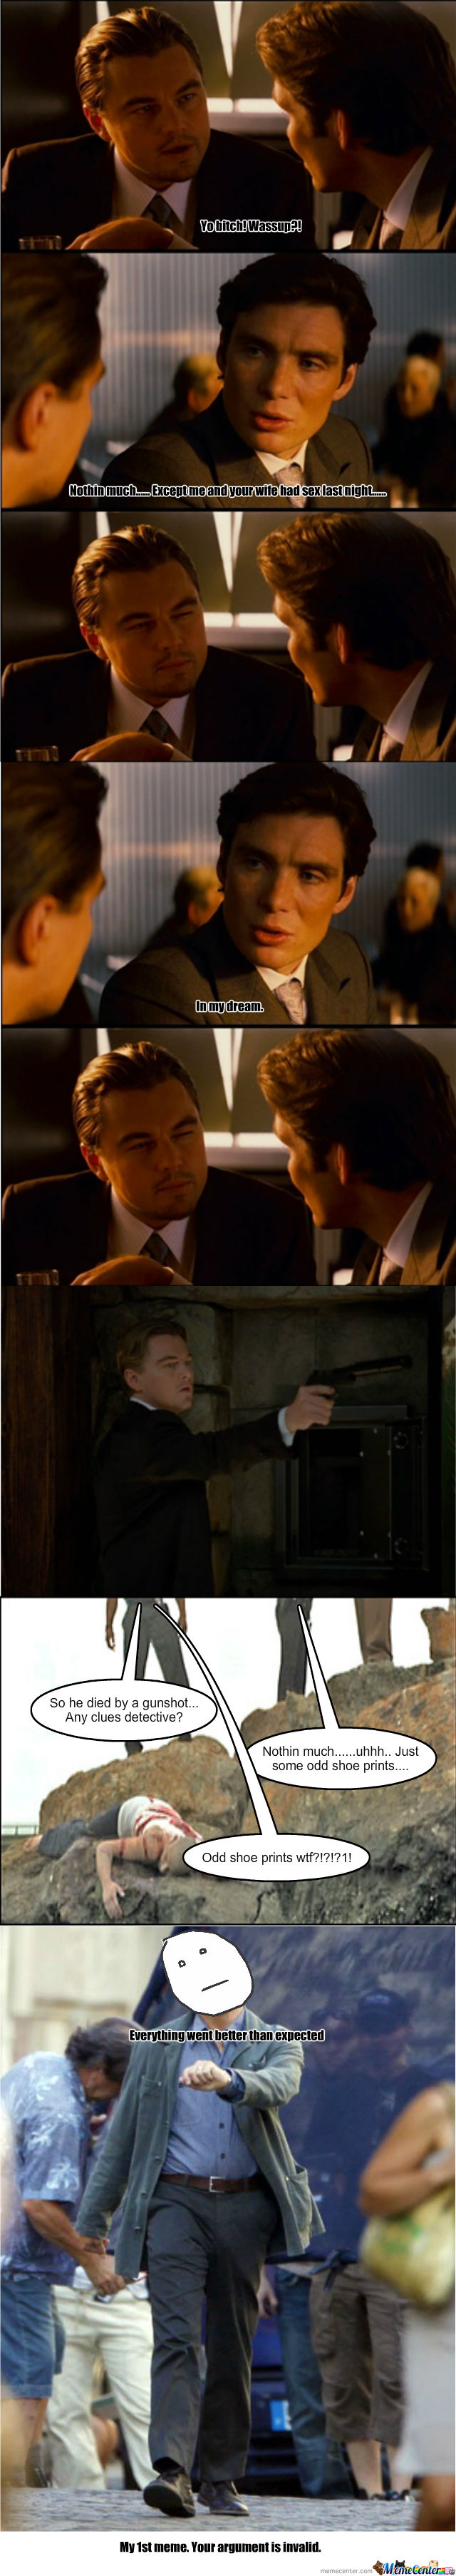 Inception Alternate Story..